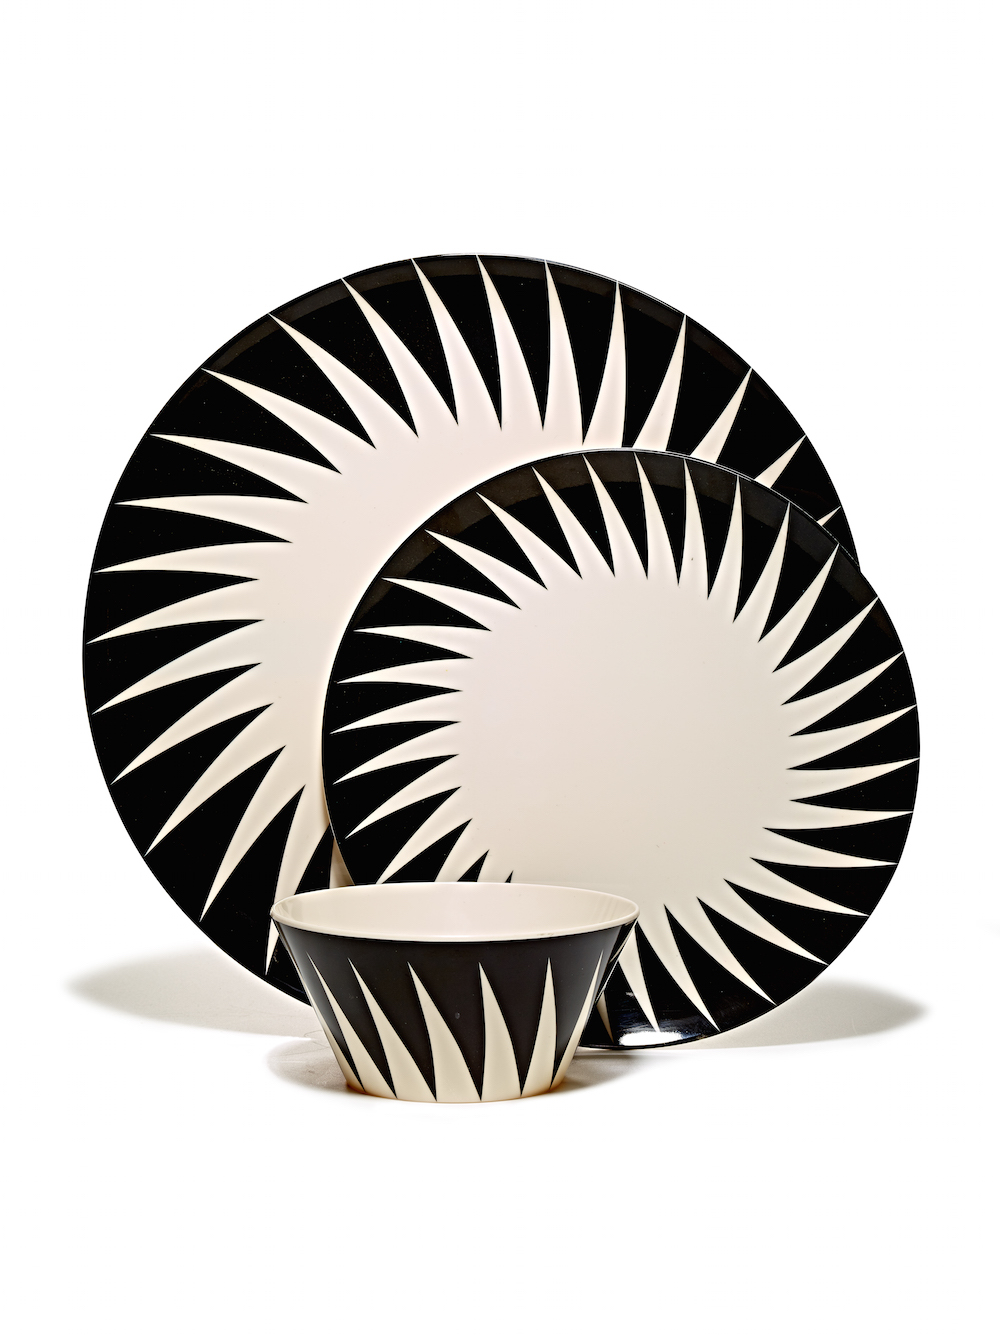 Spice Up Your Home With This New Dish Set From Marshalls